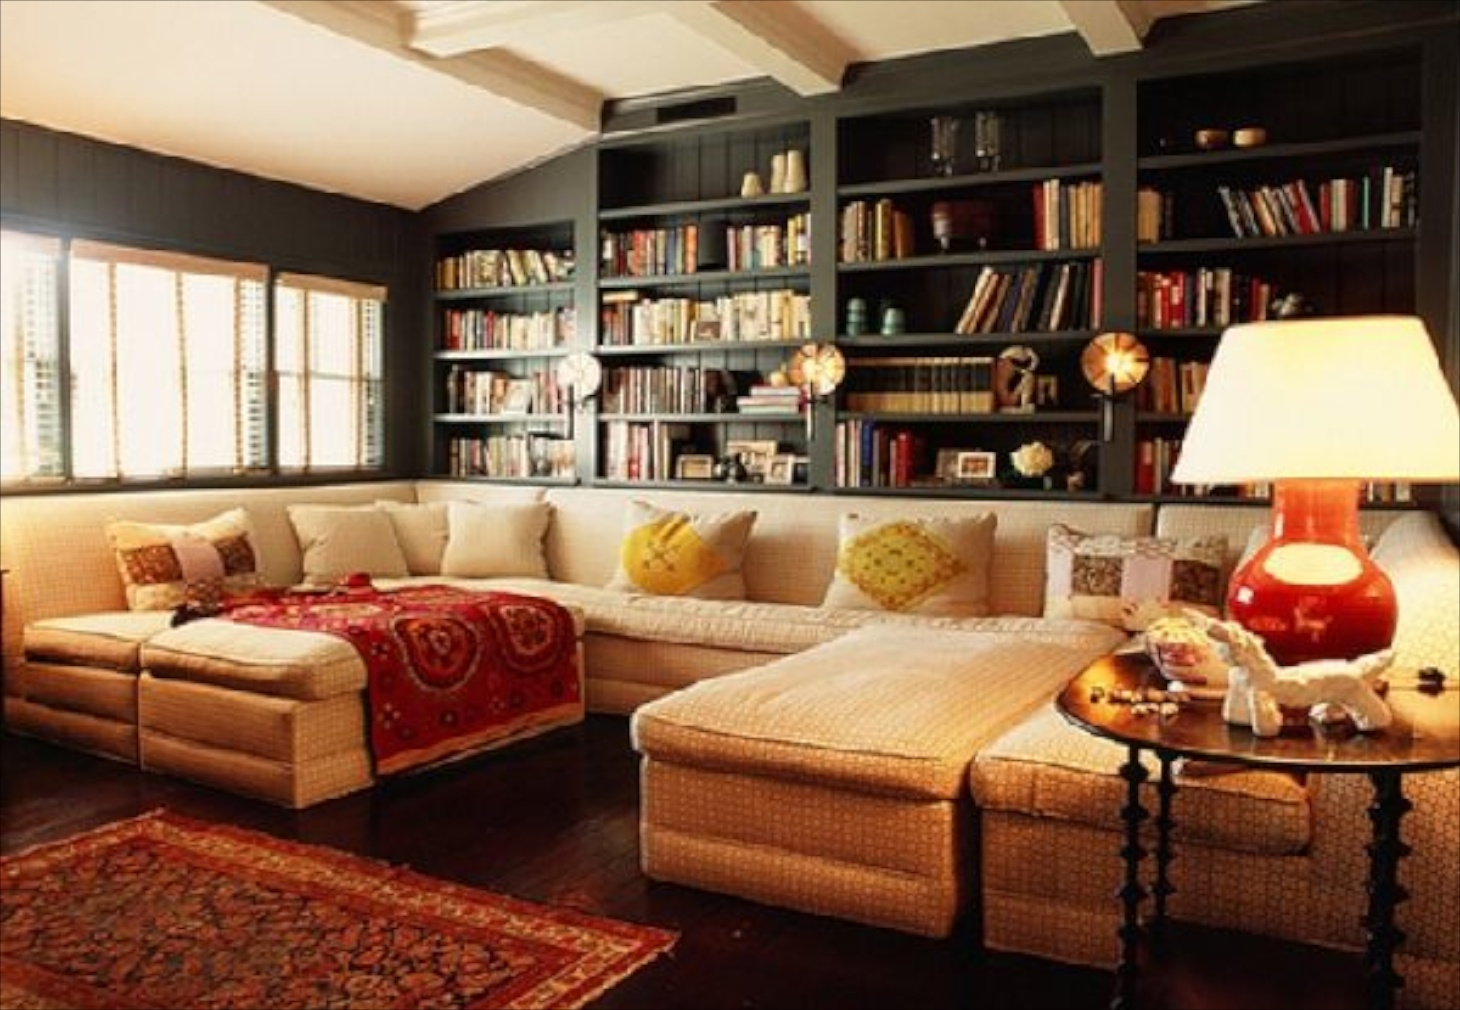 23 Sofas And Bookcase Ideas In Cozy Living Room Design With Mixture Classic And Modern Styles Whg